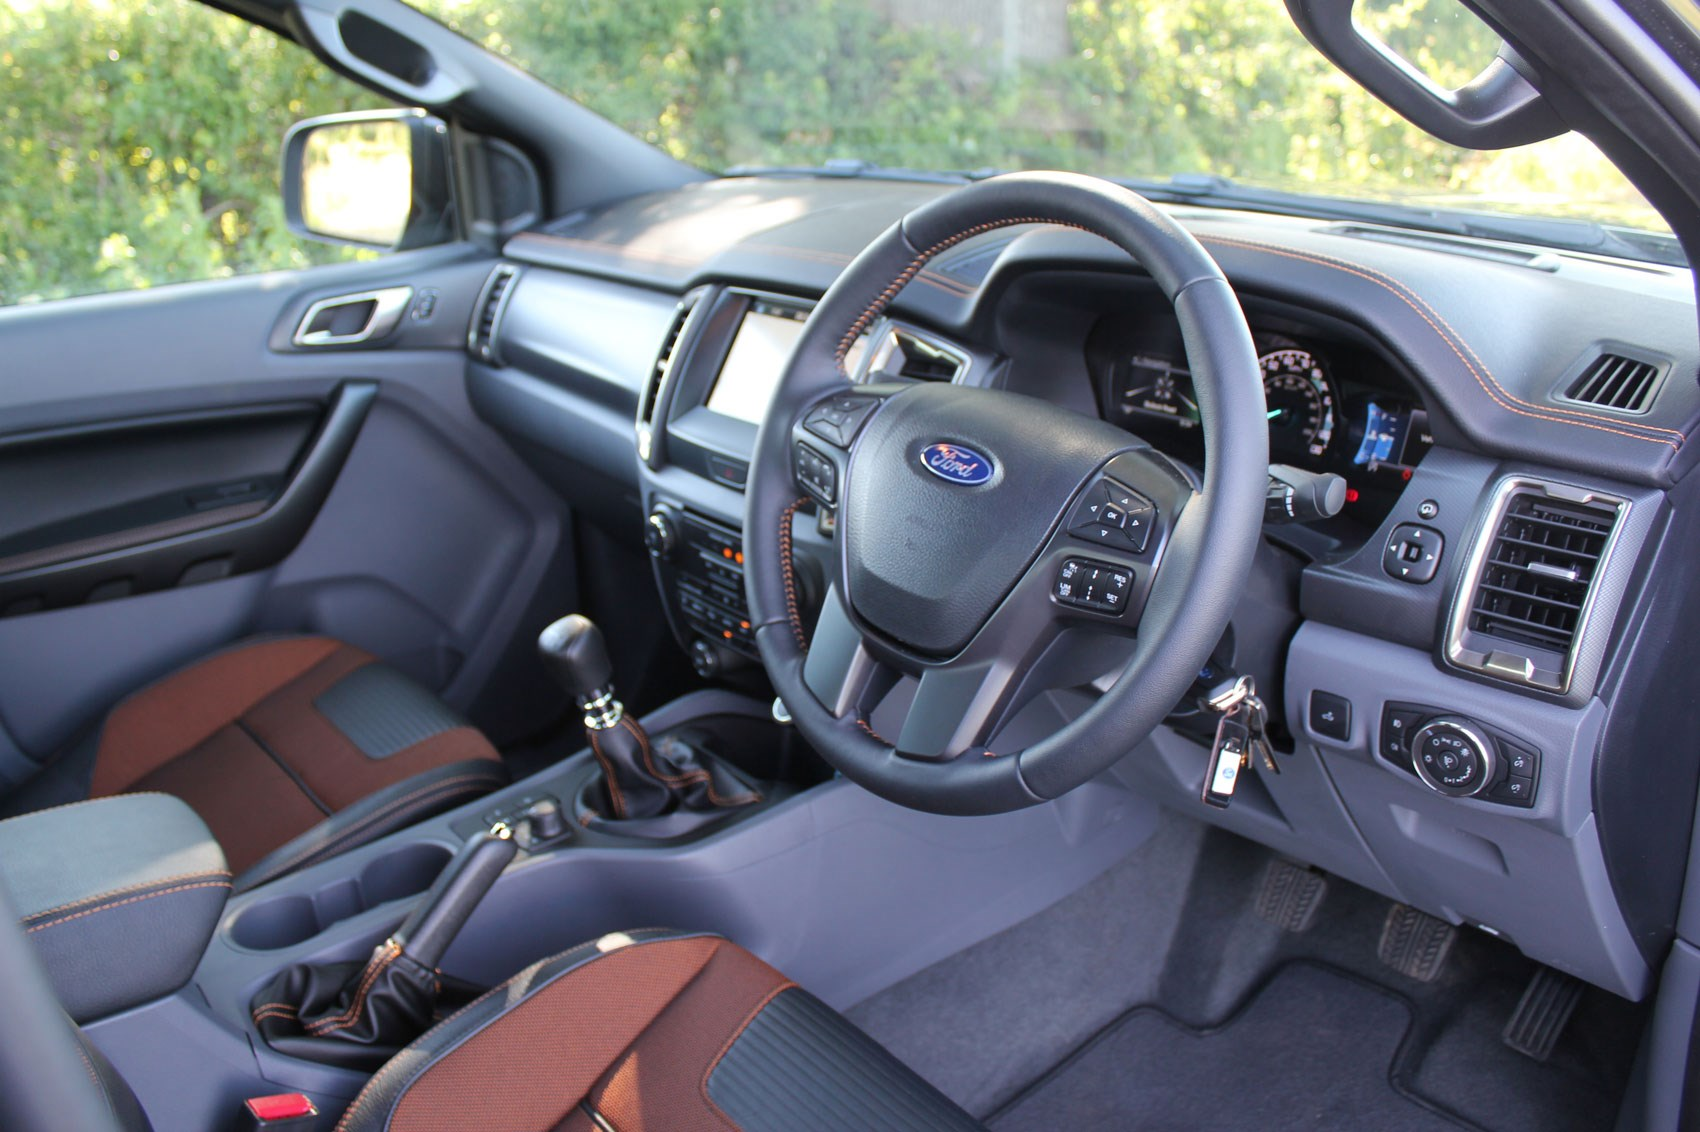 Ford Ranger Wildtrak Euro 6 review - cab interior